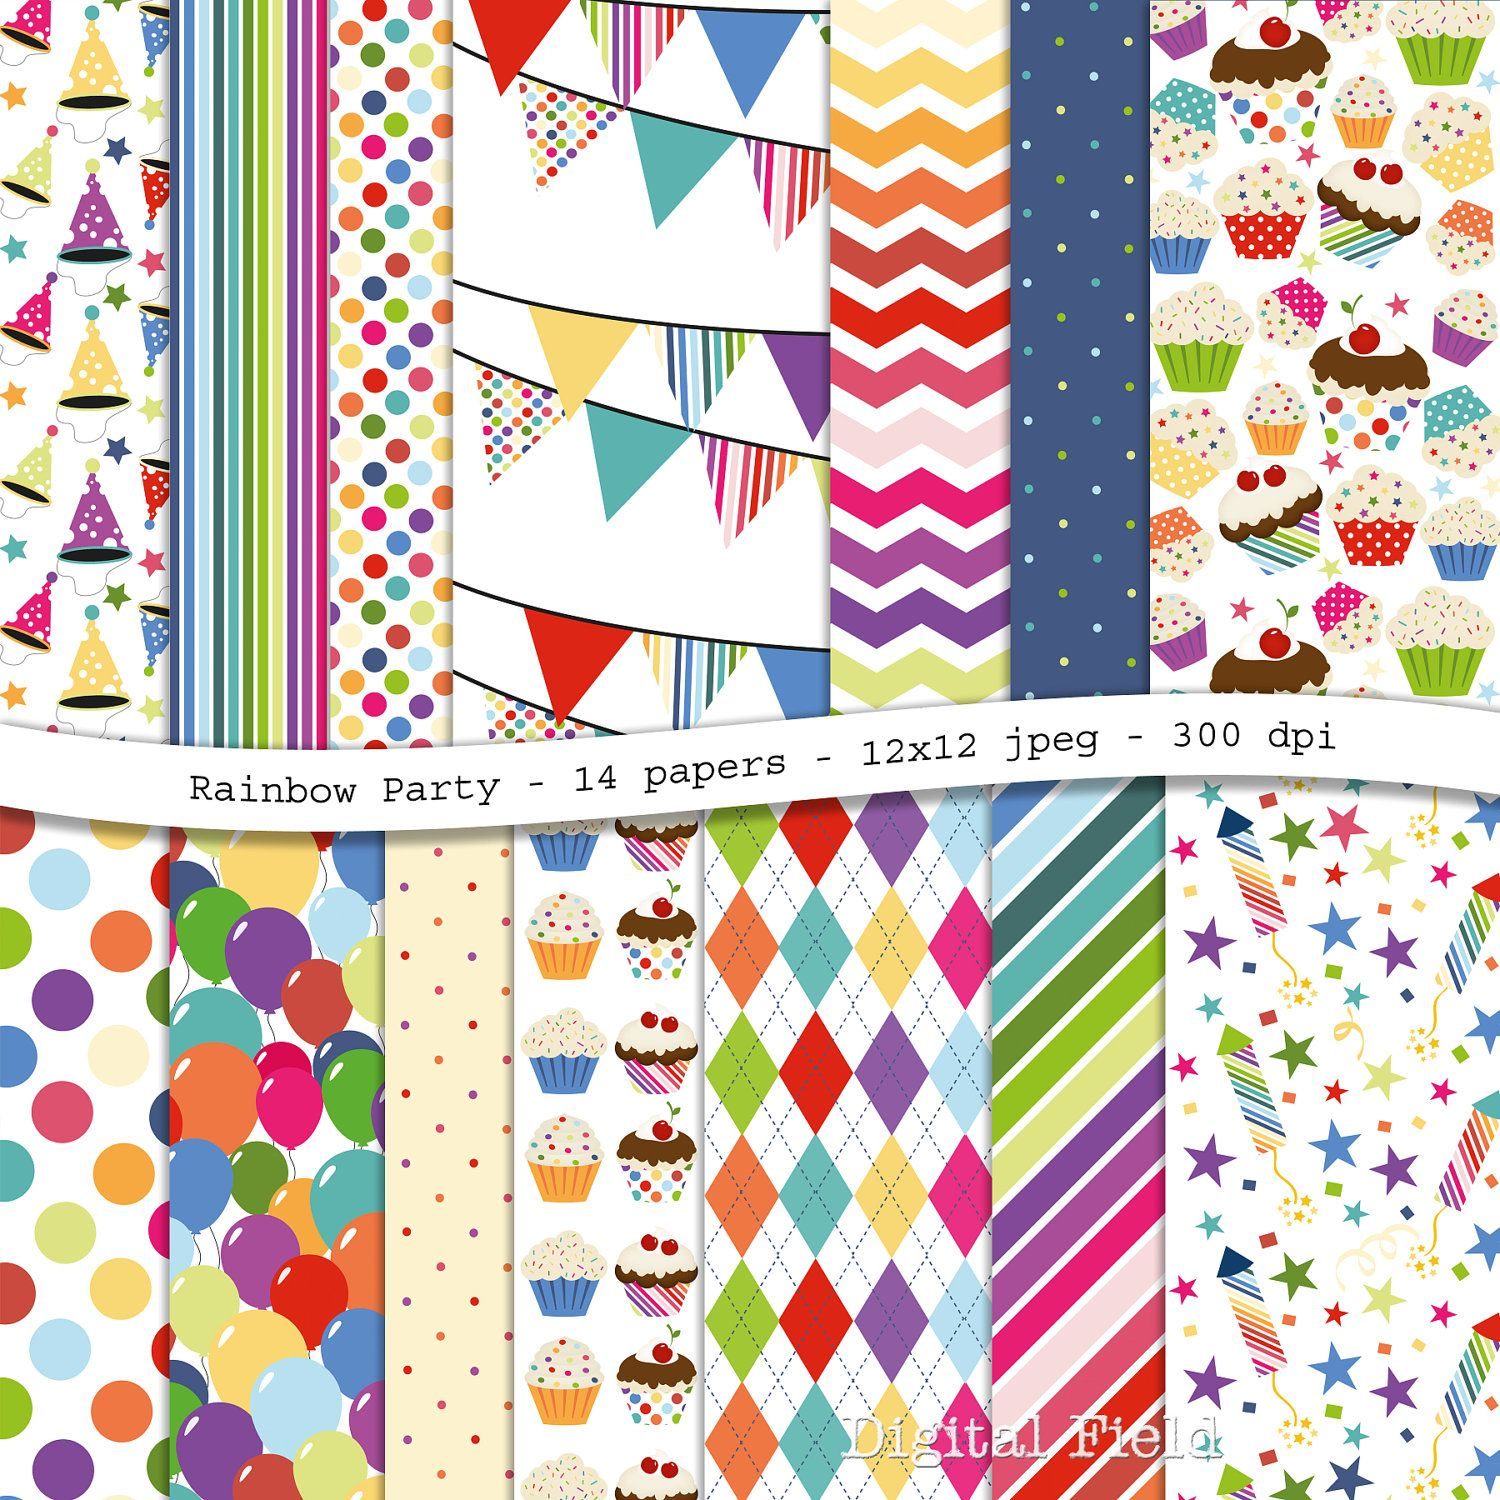 Scrapbook ideas rainbow - Rainbow Party Colorful Digital Scrapbooking Paper Pack 14 Jpeg Papers 12x12 Personal